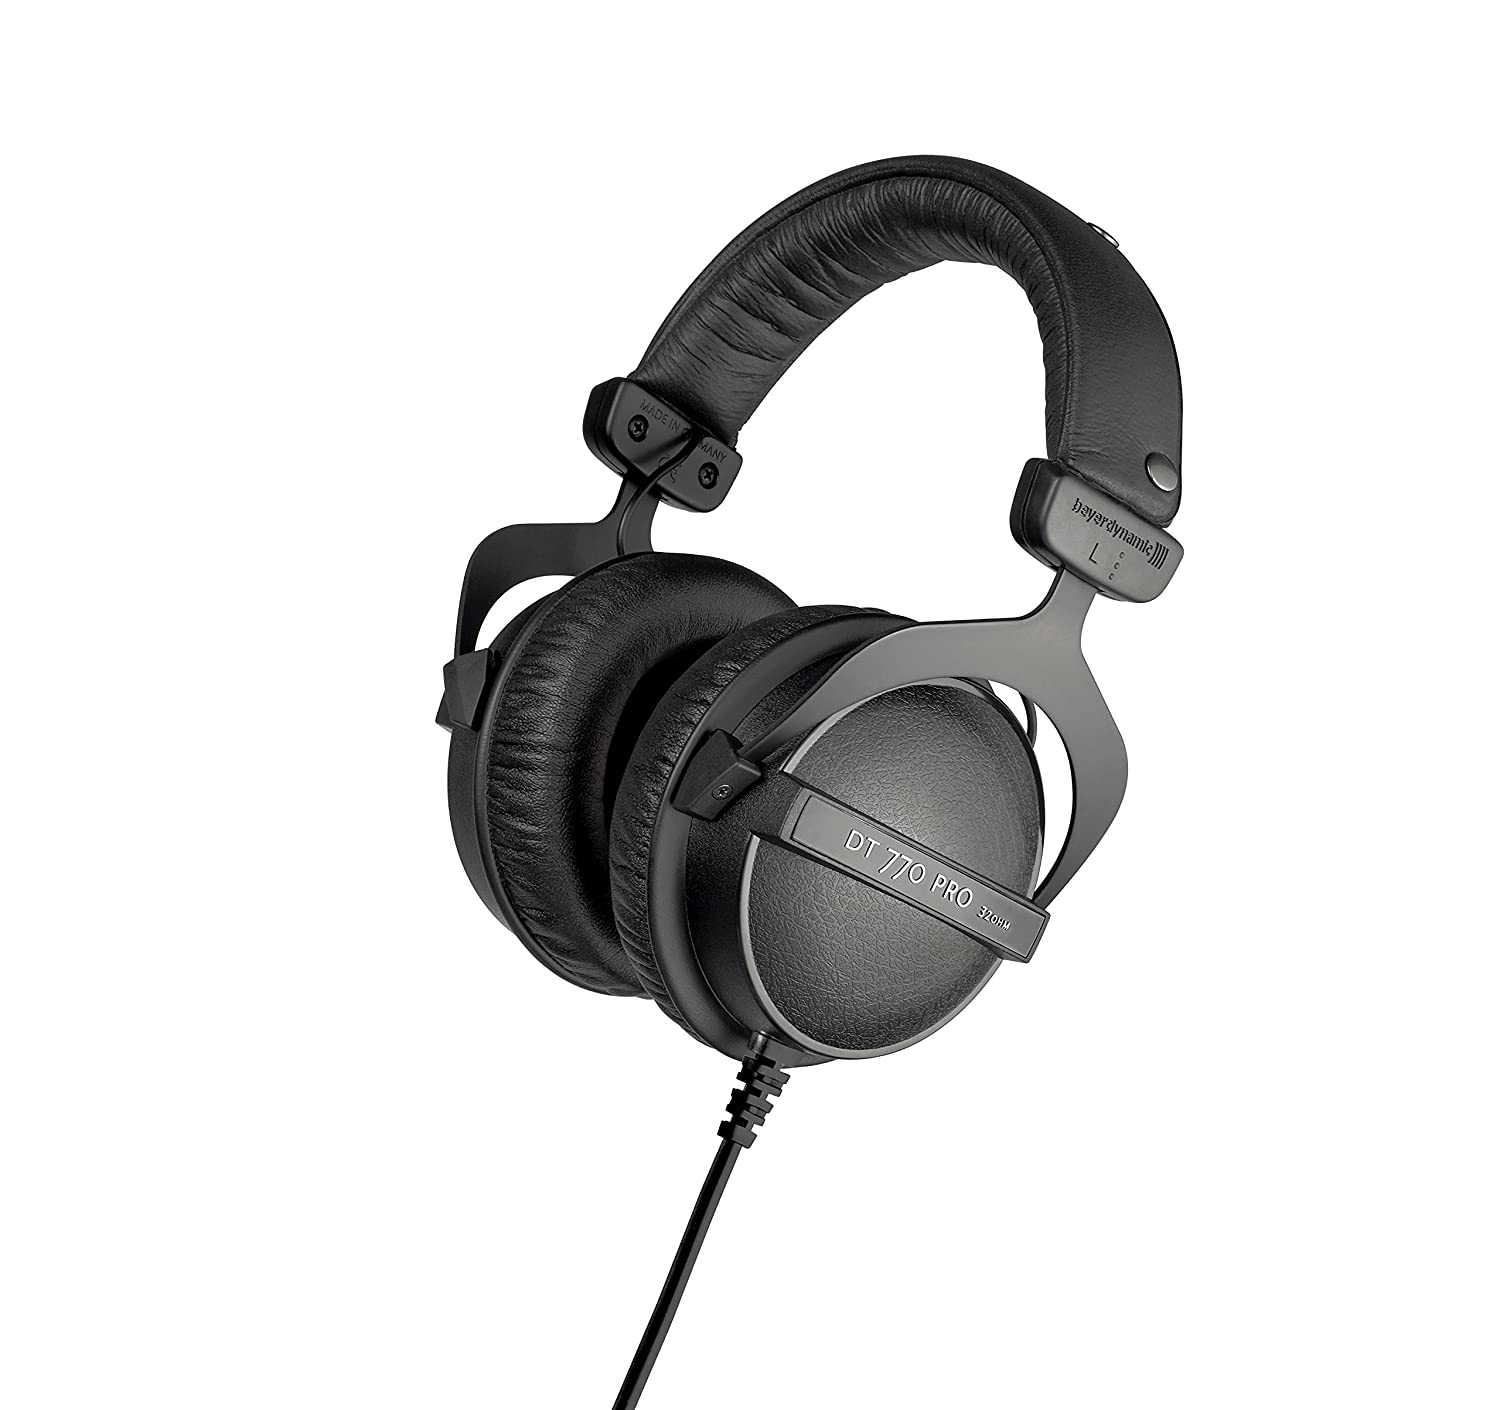 c43d61decbc Amazon.com: beyerdynamic DT 770 PRO 32 Ohm Over-Ear Studio Headphones in  Black. Enclosed Design, Wired for Professional Sound in The Studio and on  Mobile ...